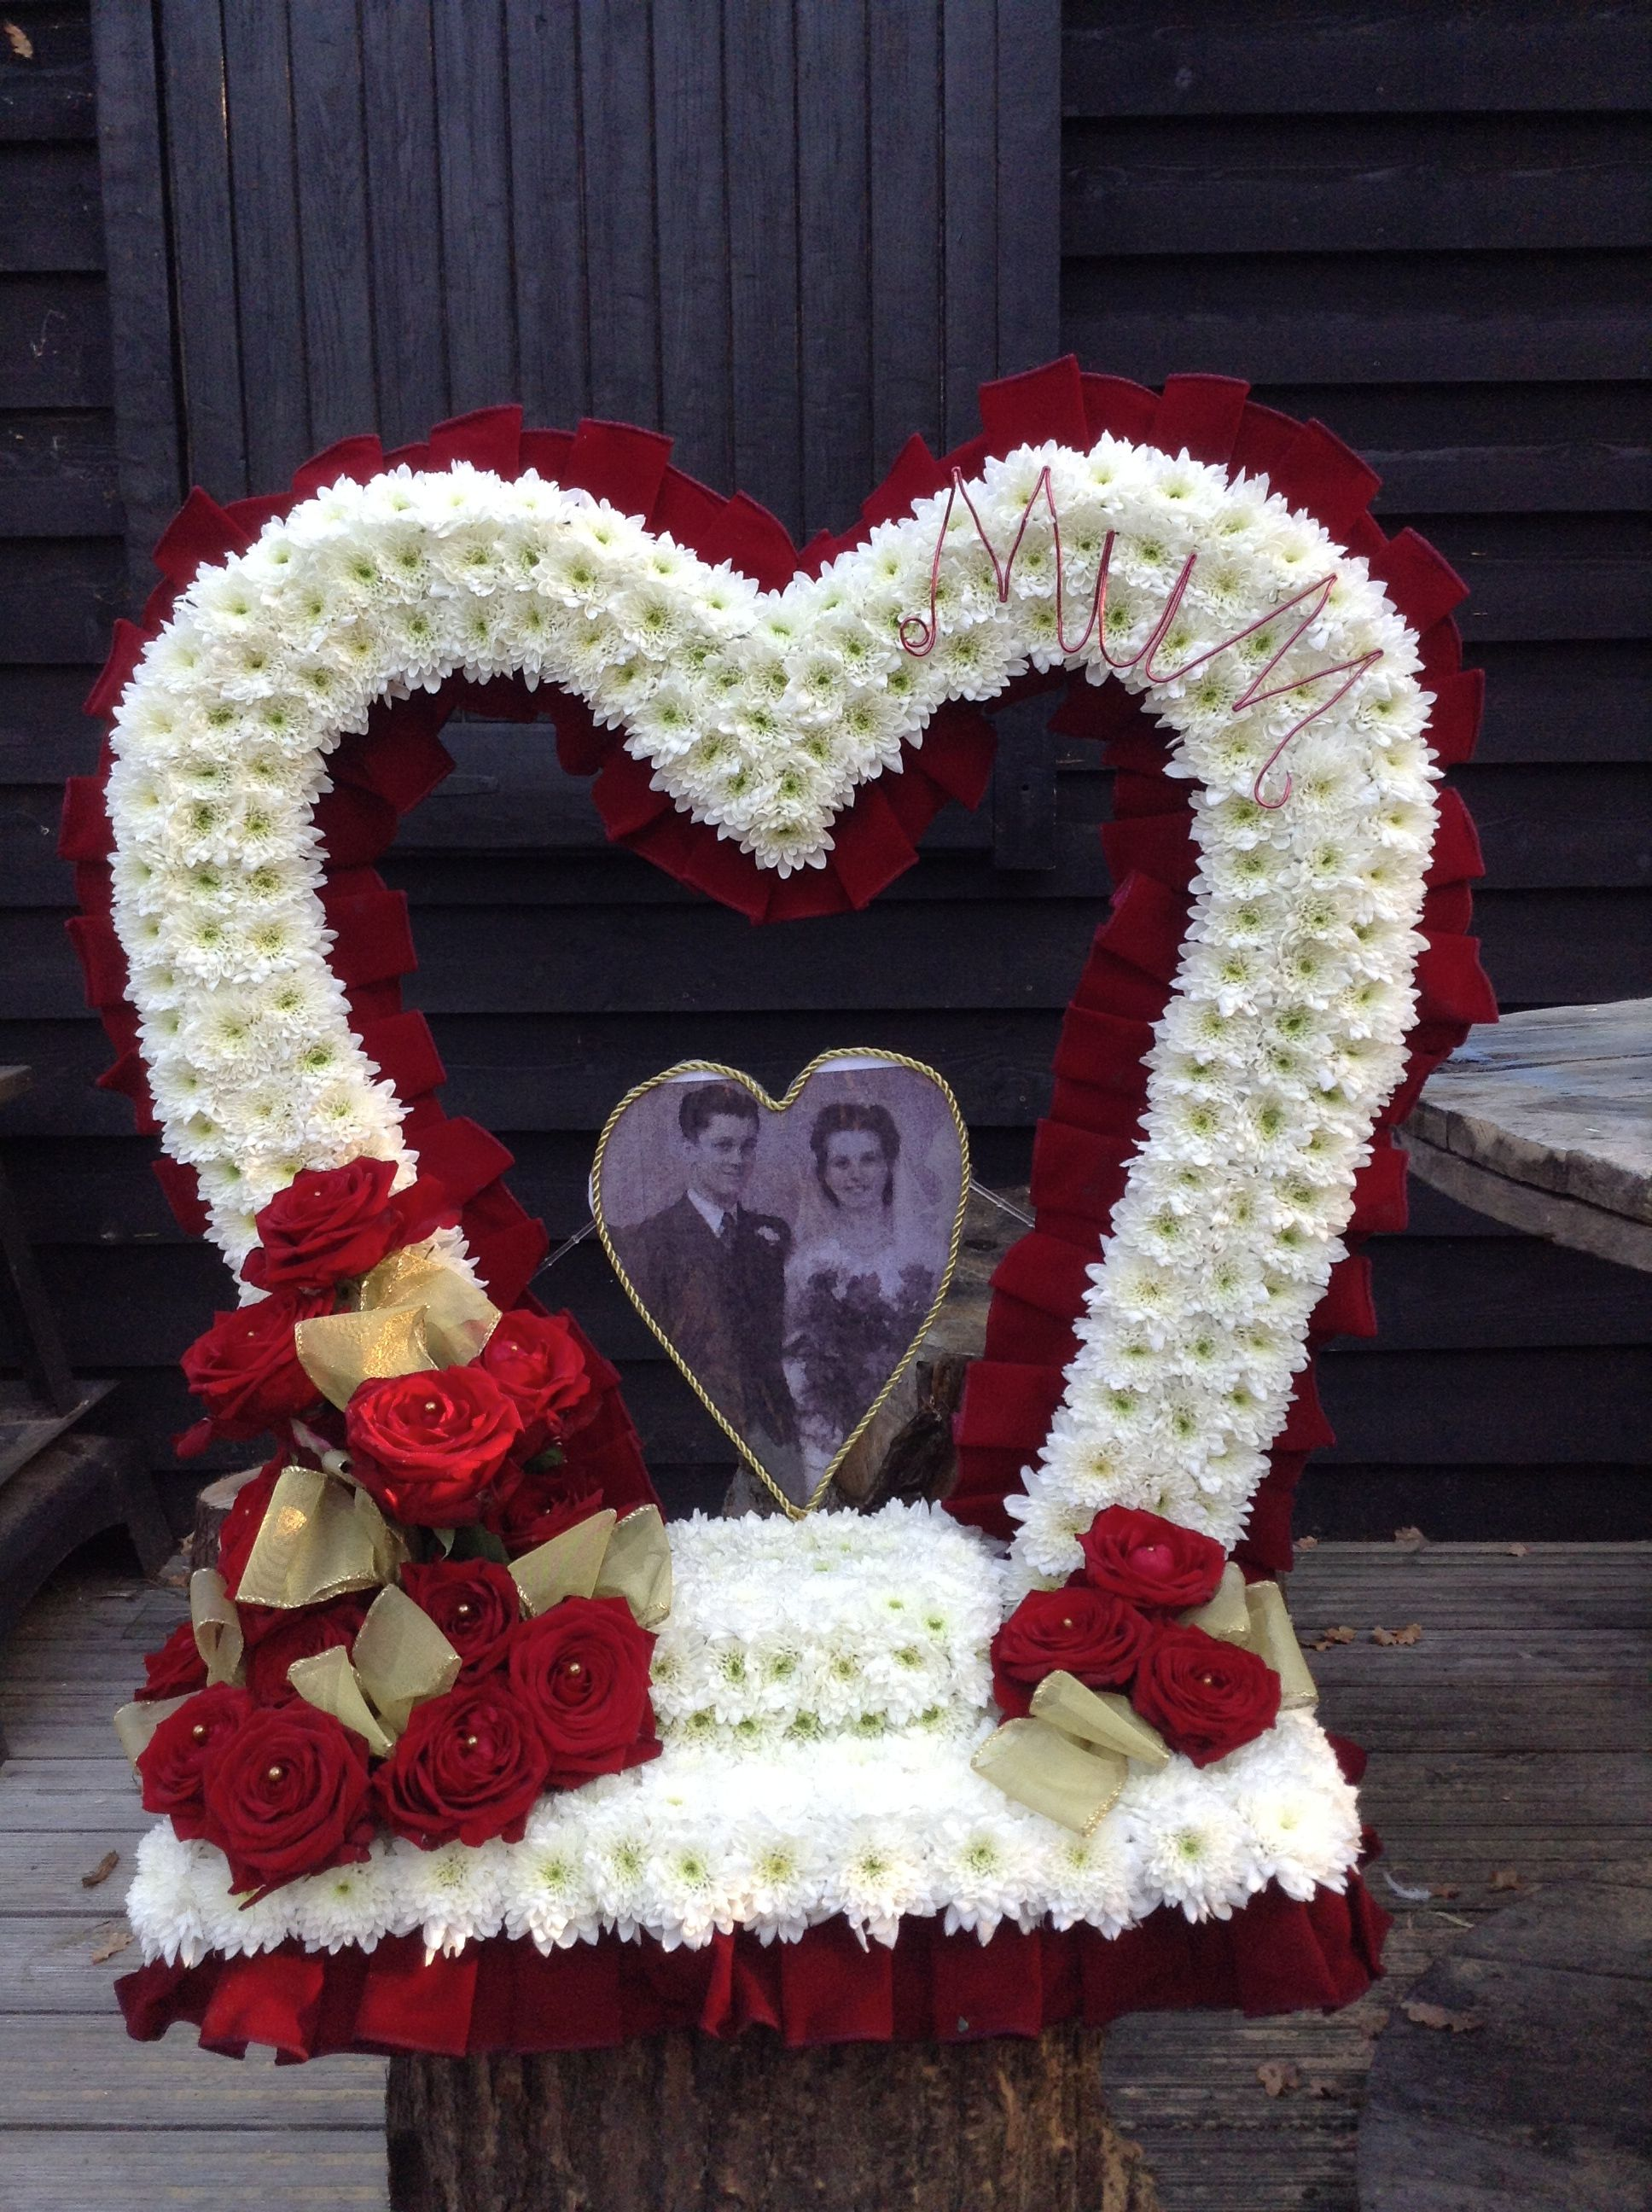 Funeral flowers heart funeral flower tribute gates of heaven heart funeral flowers heart funeral flower tribute gates of heaven heart funeral flower tribute izmirmasajfo Image collections